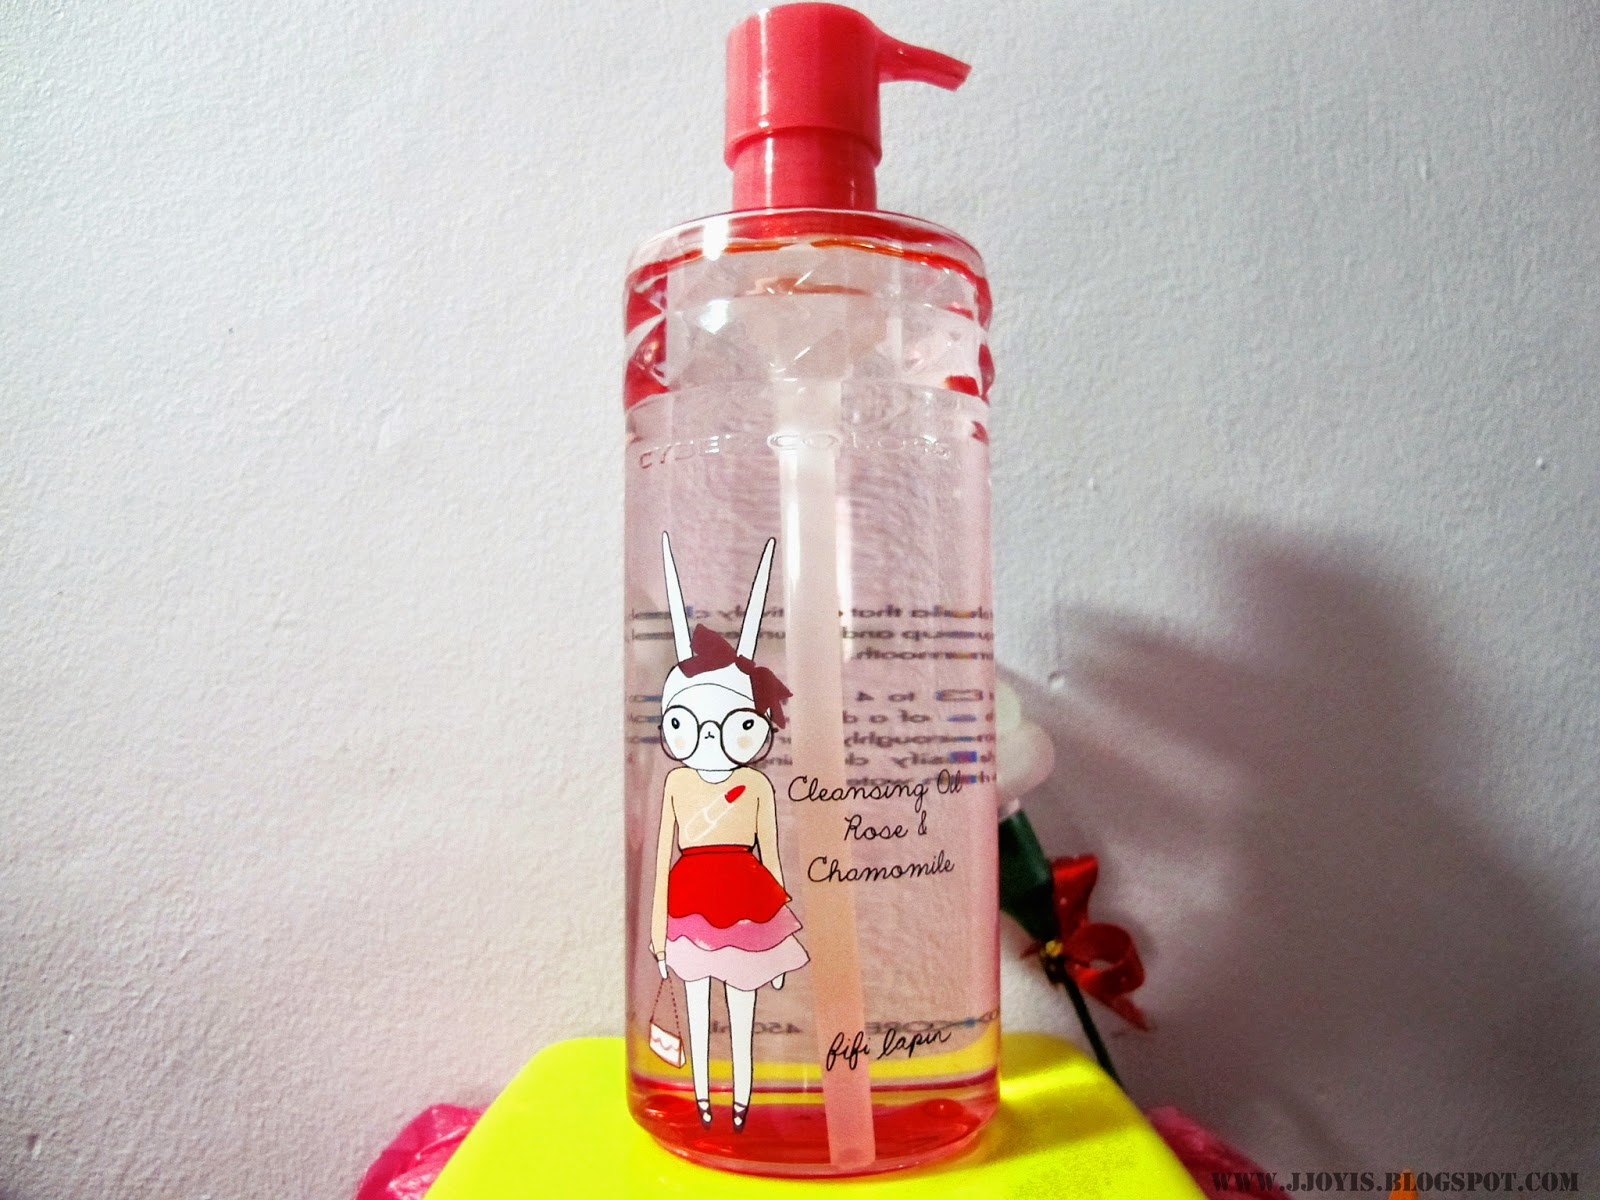 cyber colors cleansing oil fifi lapin